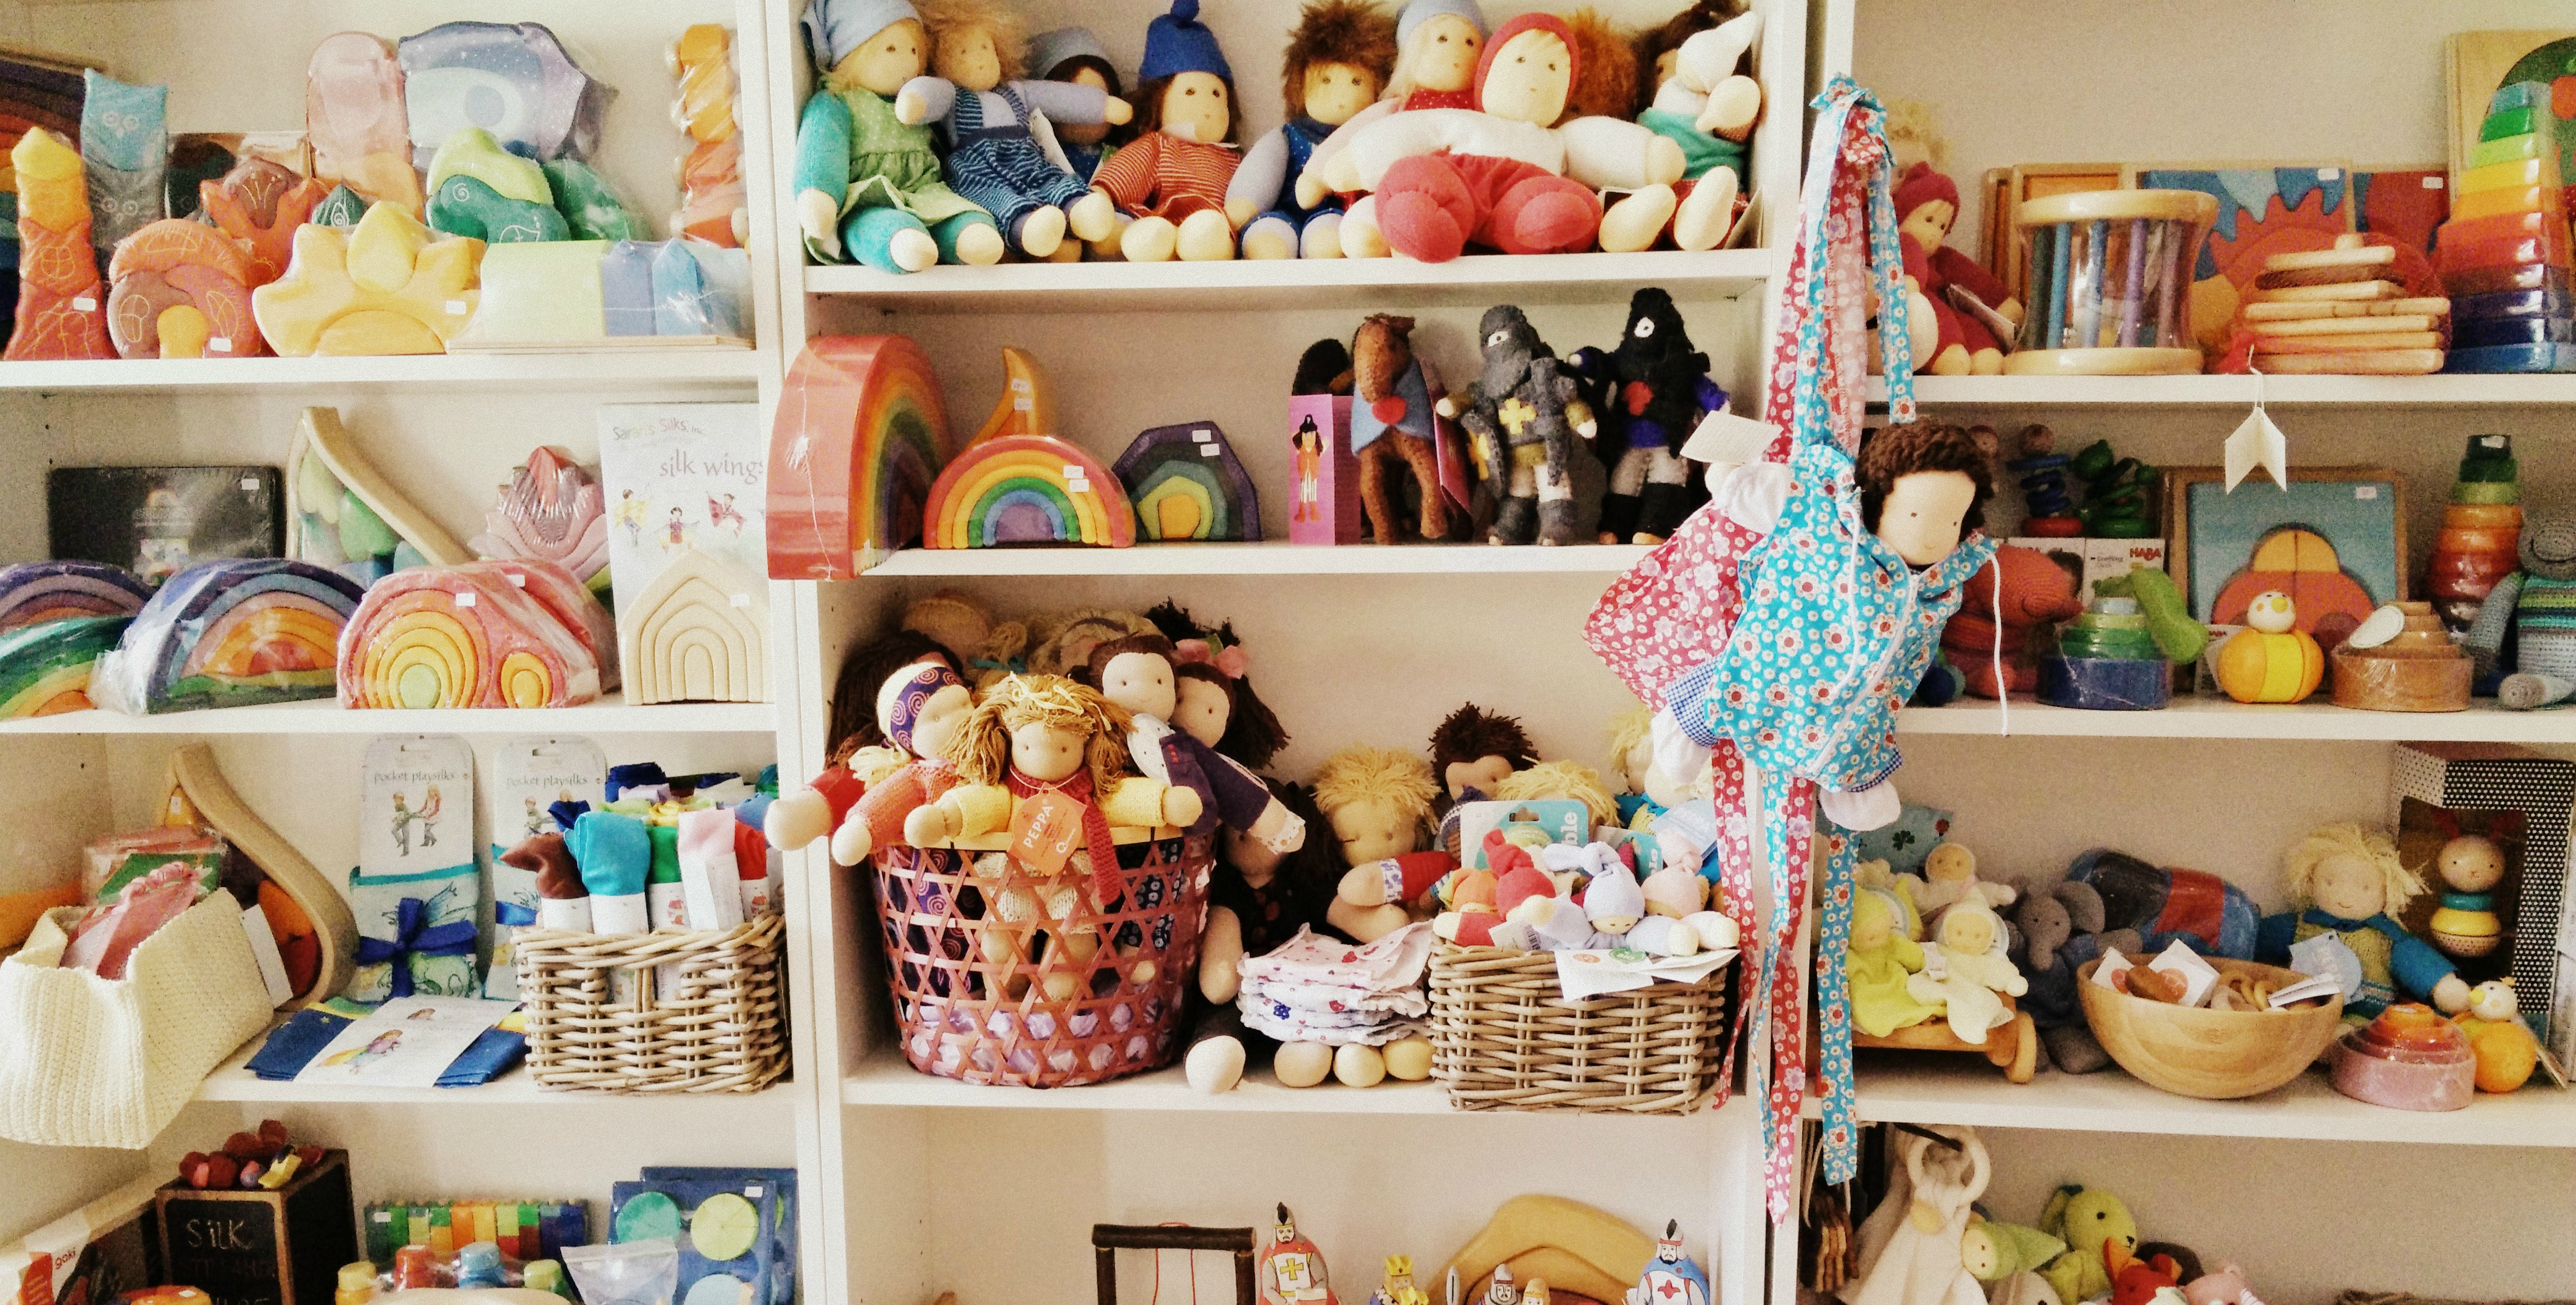 Toy Shelf Line Of Toys Produced In Germany